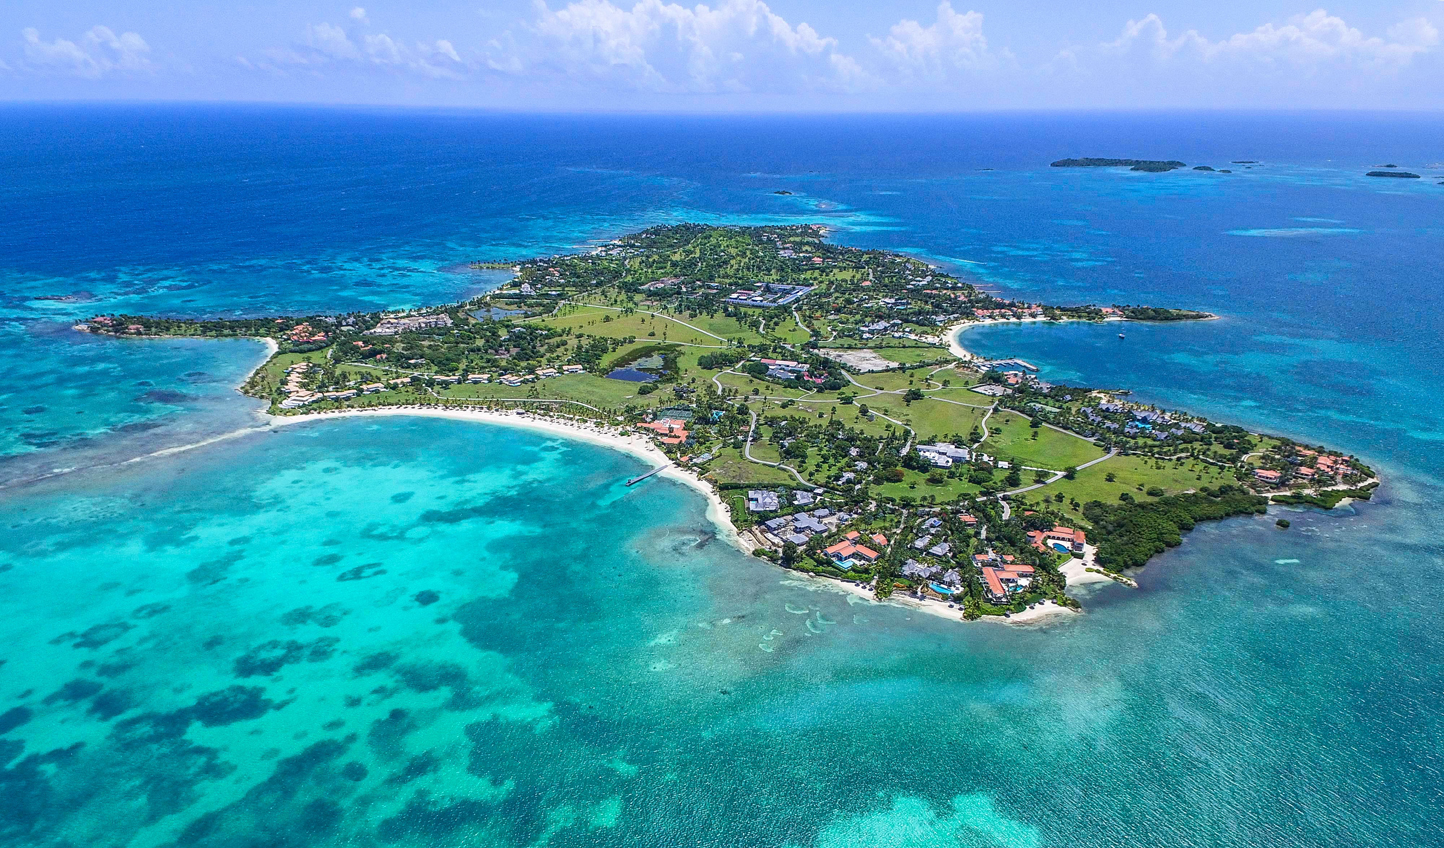 Escape to your private island at Jumby Bay